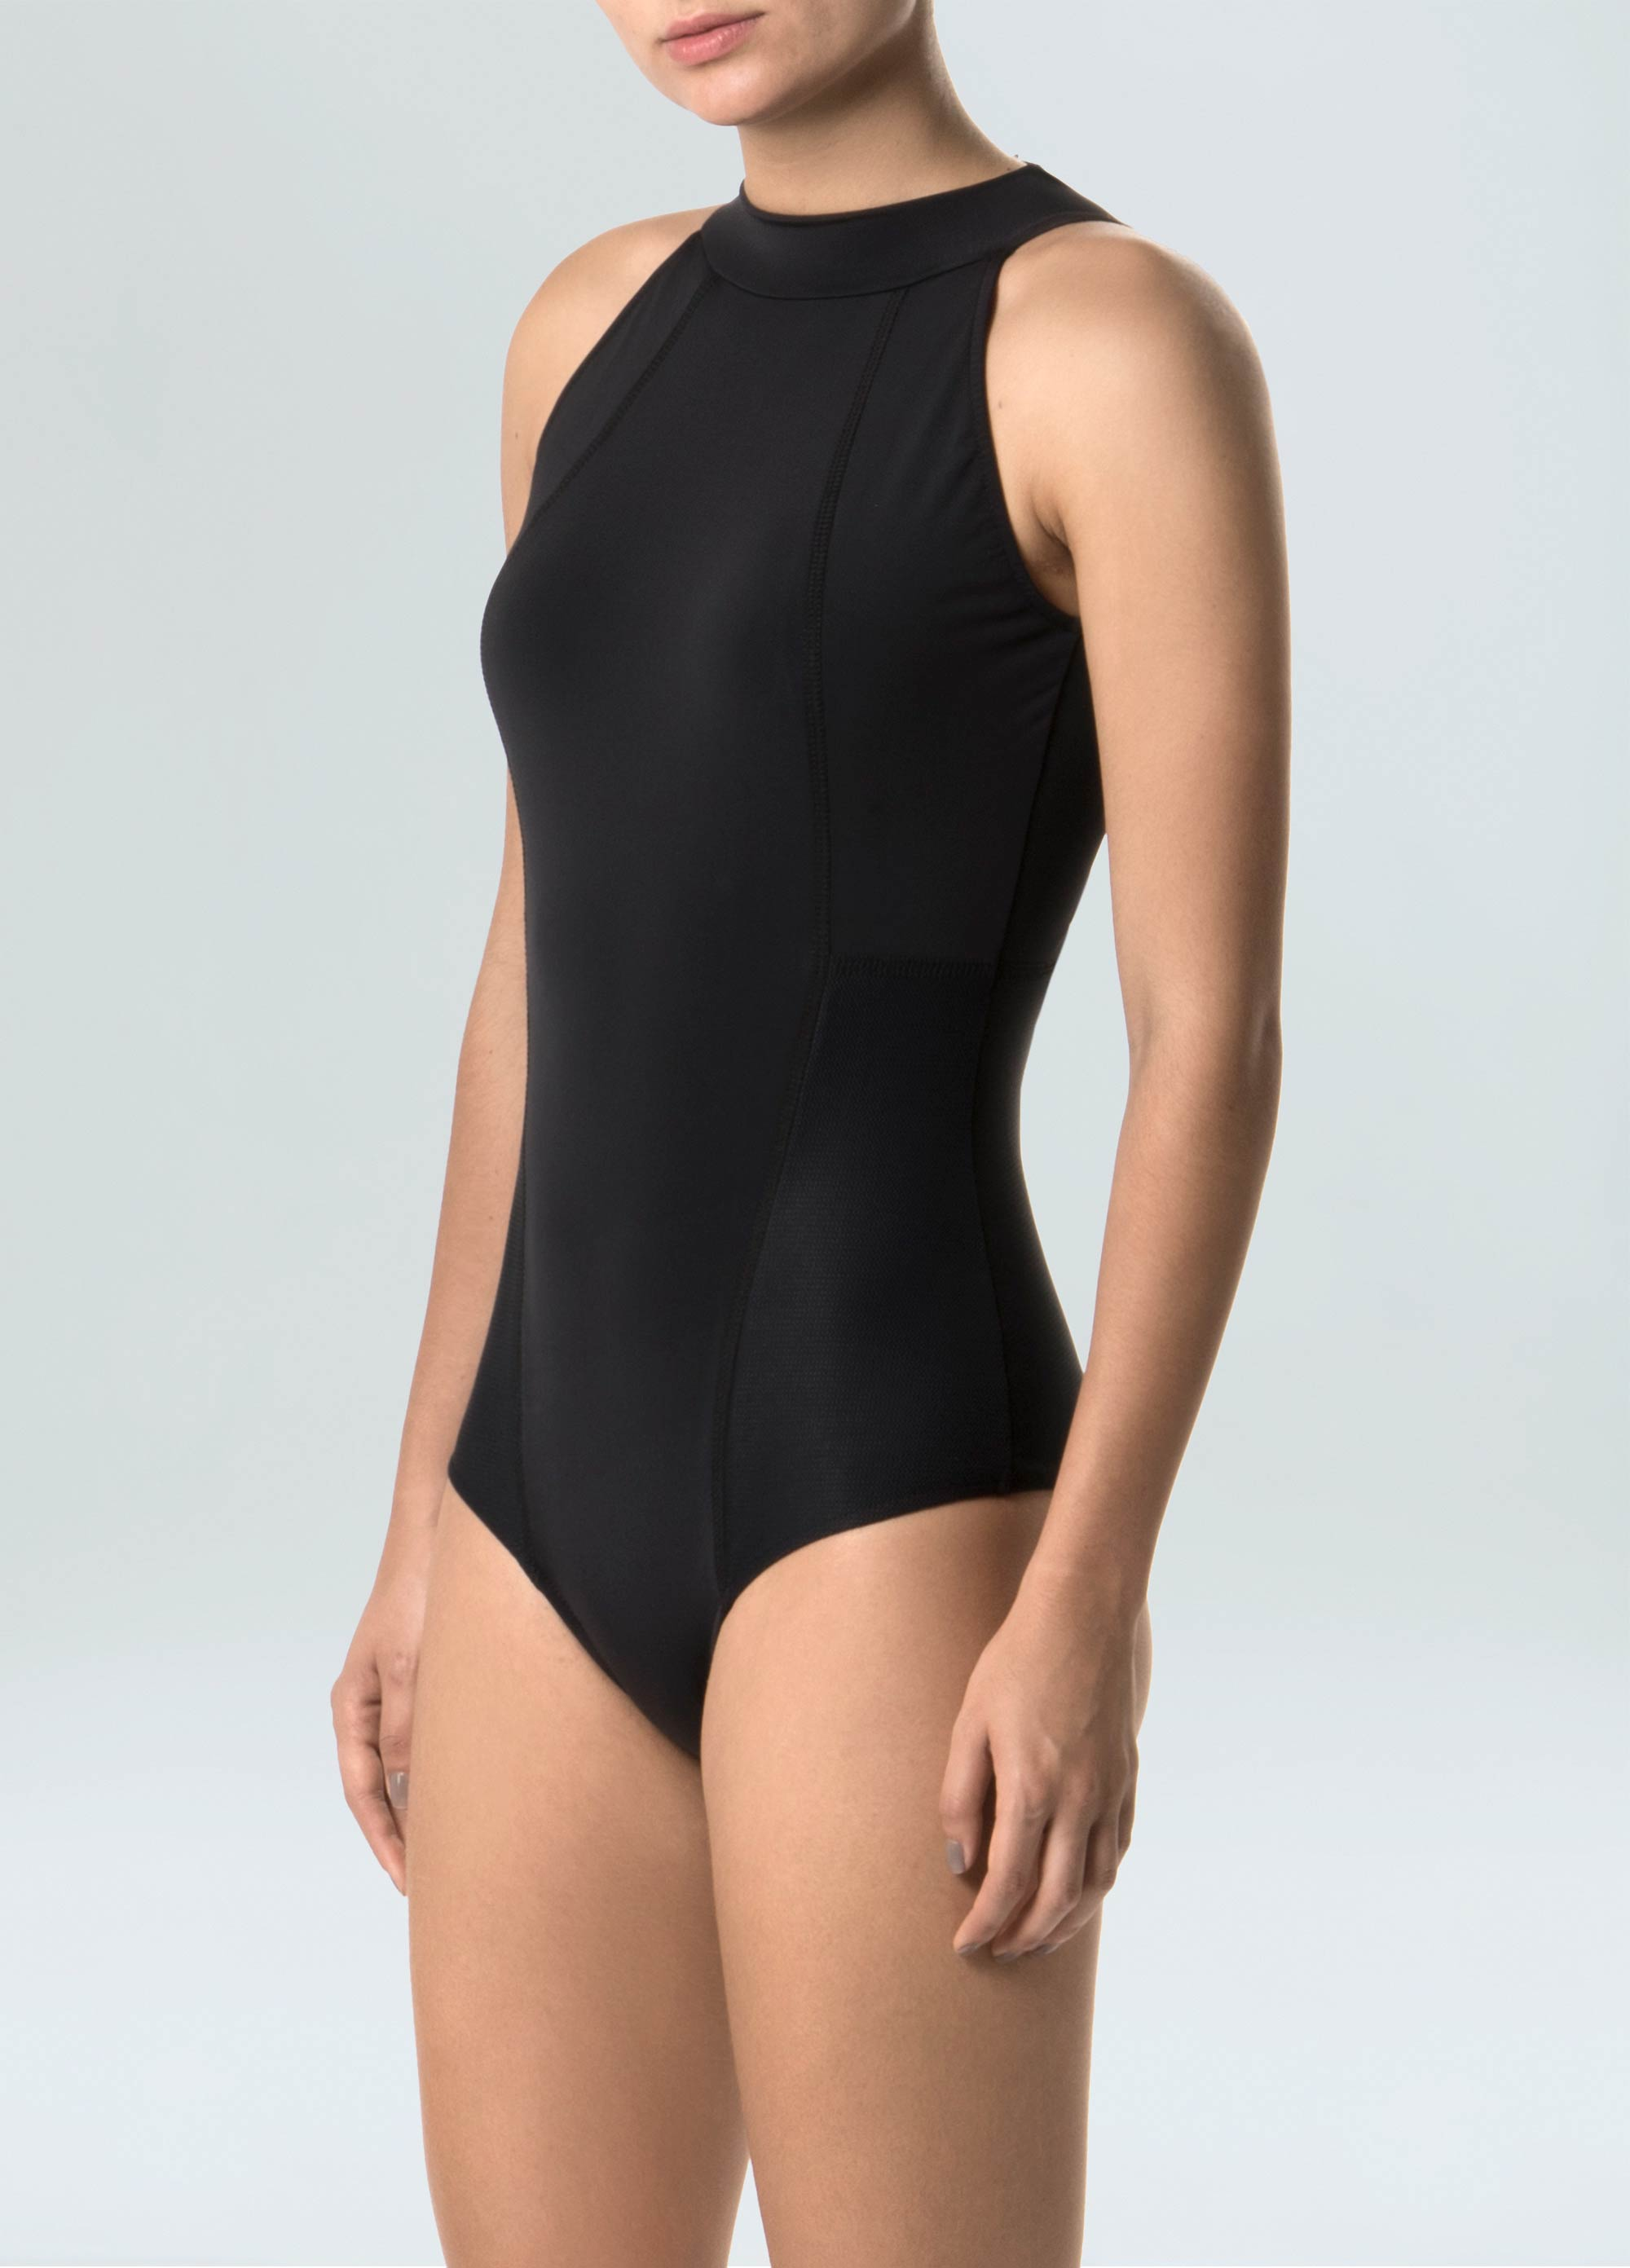 Women's Diver Rash guard Swimsuit